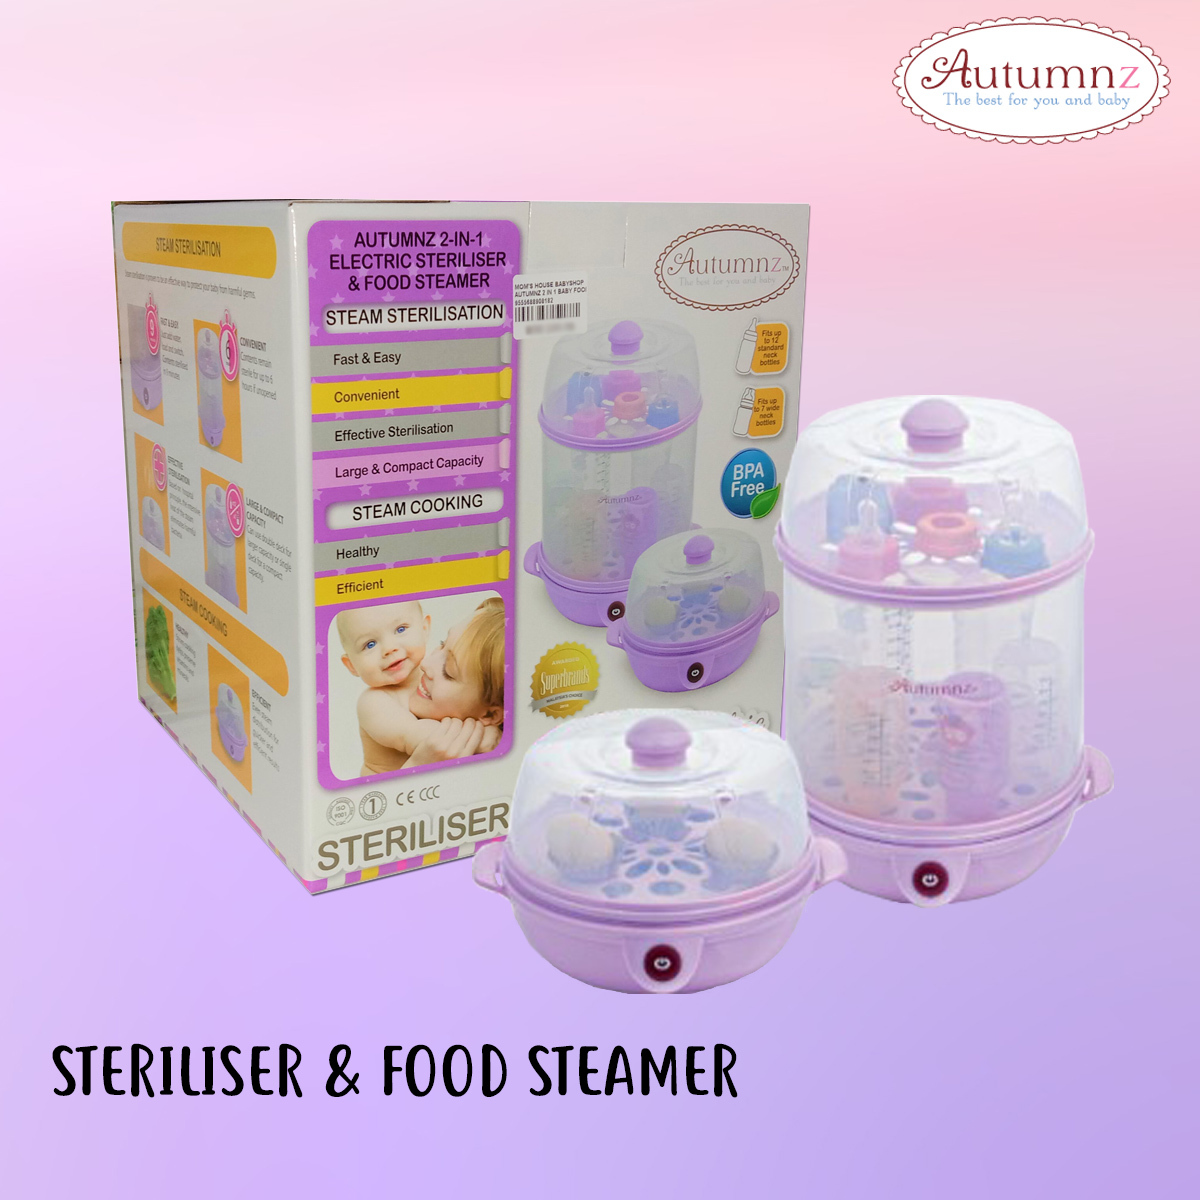 steriliser & food steamer (purple).jpg